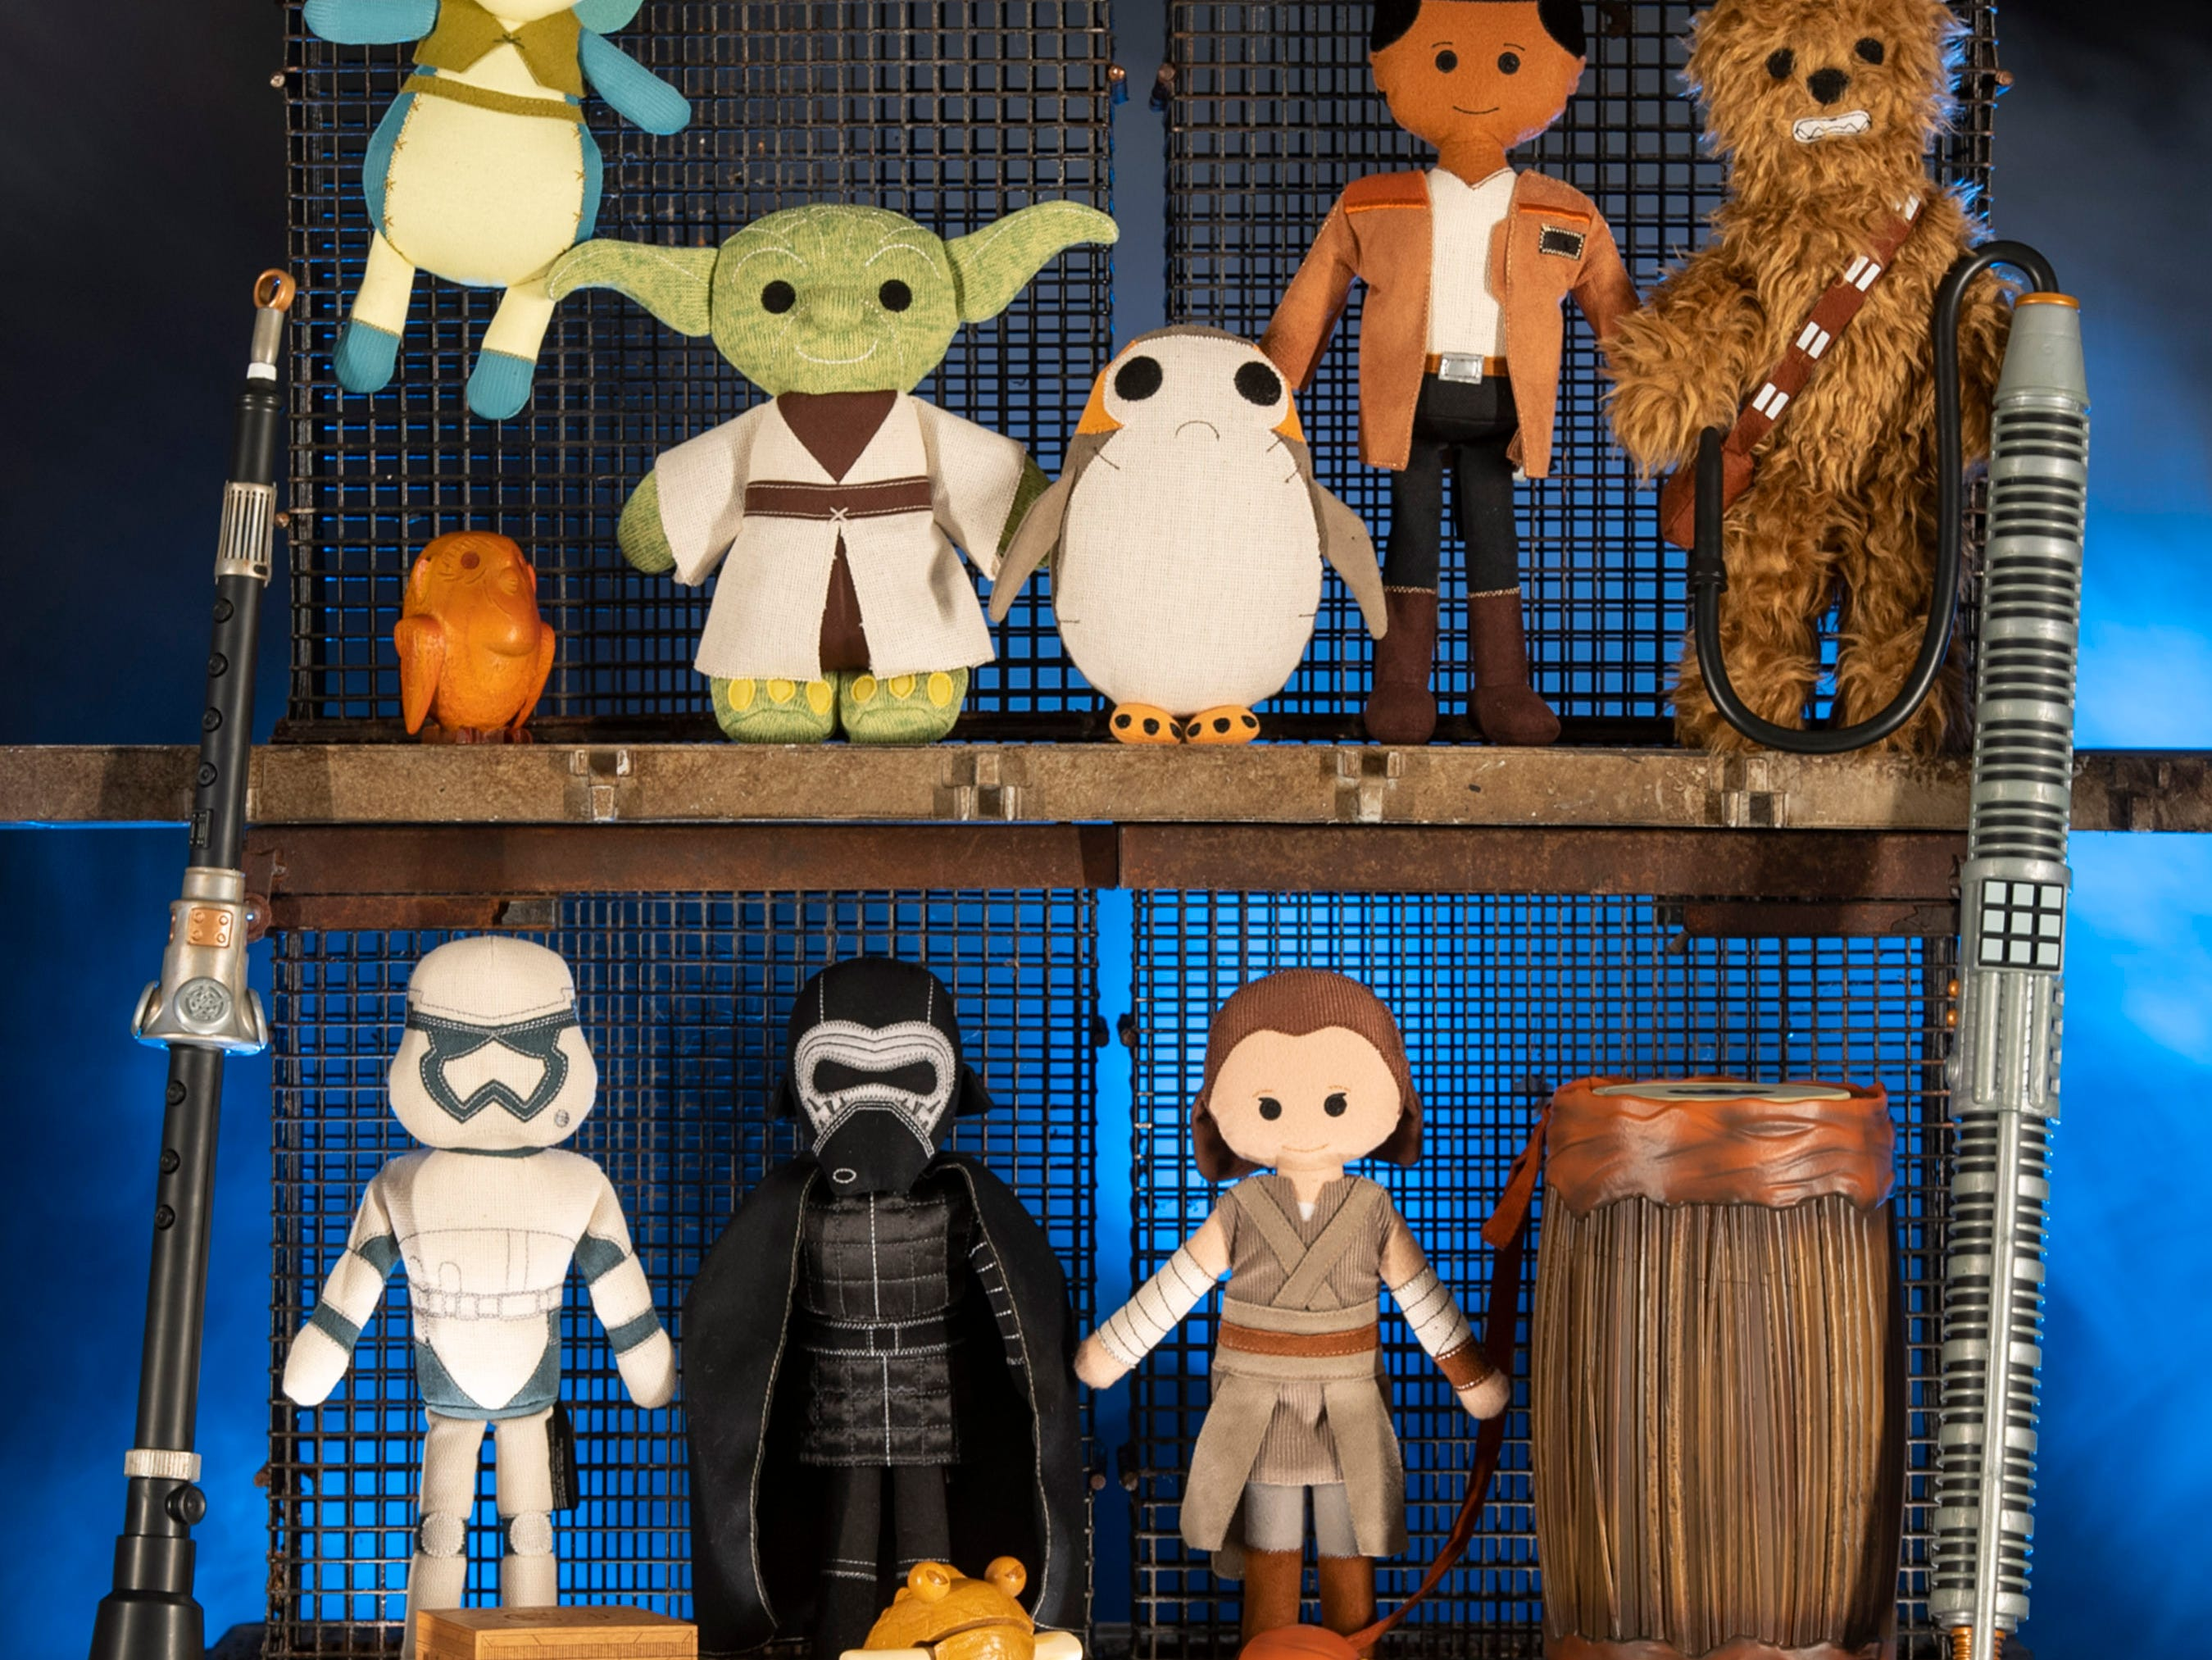 The Toydarian Toymaker stall in Star Wars: Galaxy's Edge will feature an assortment of artisan-style plush characters, wood and tin toys and musical instruments.